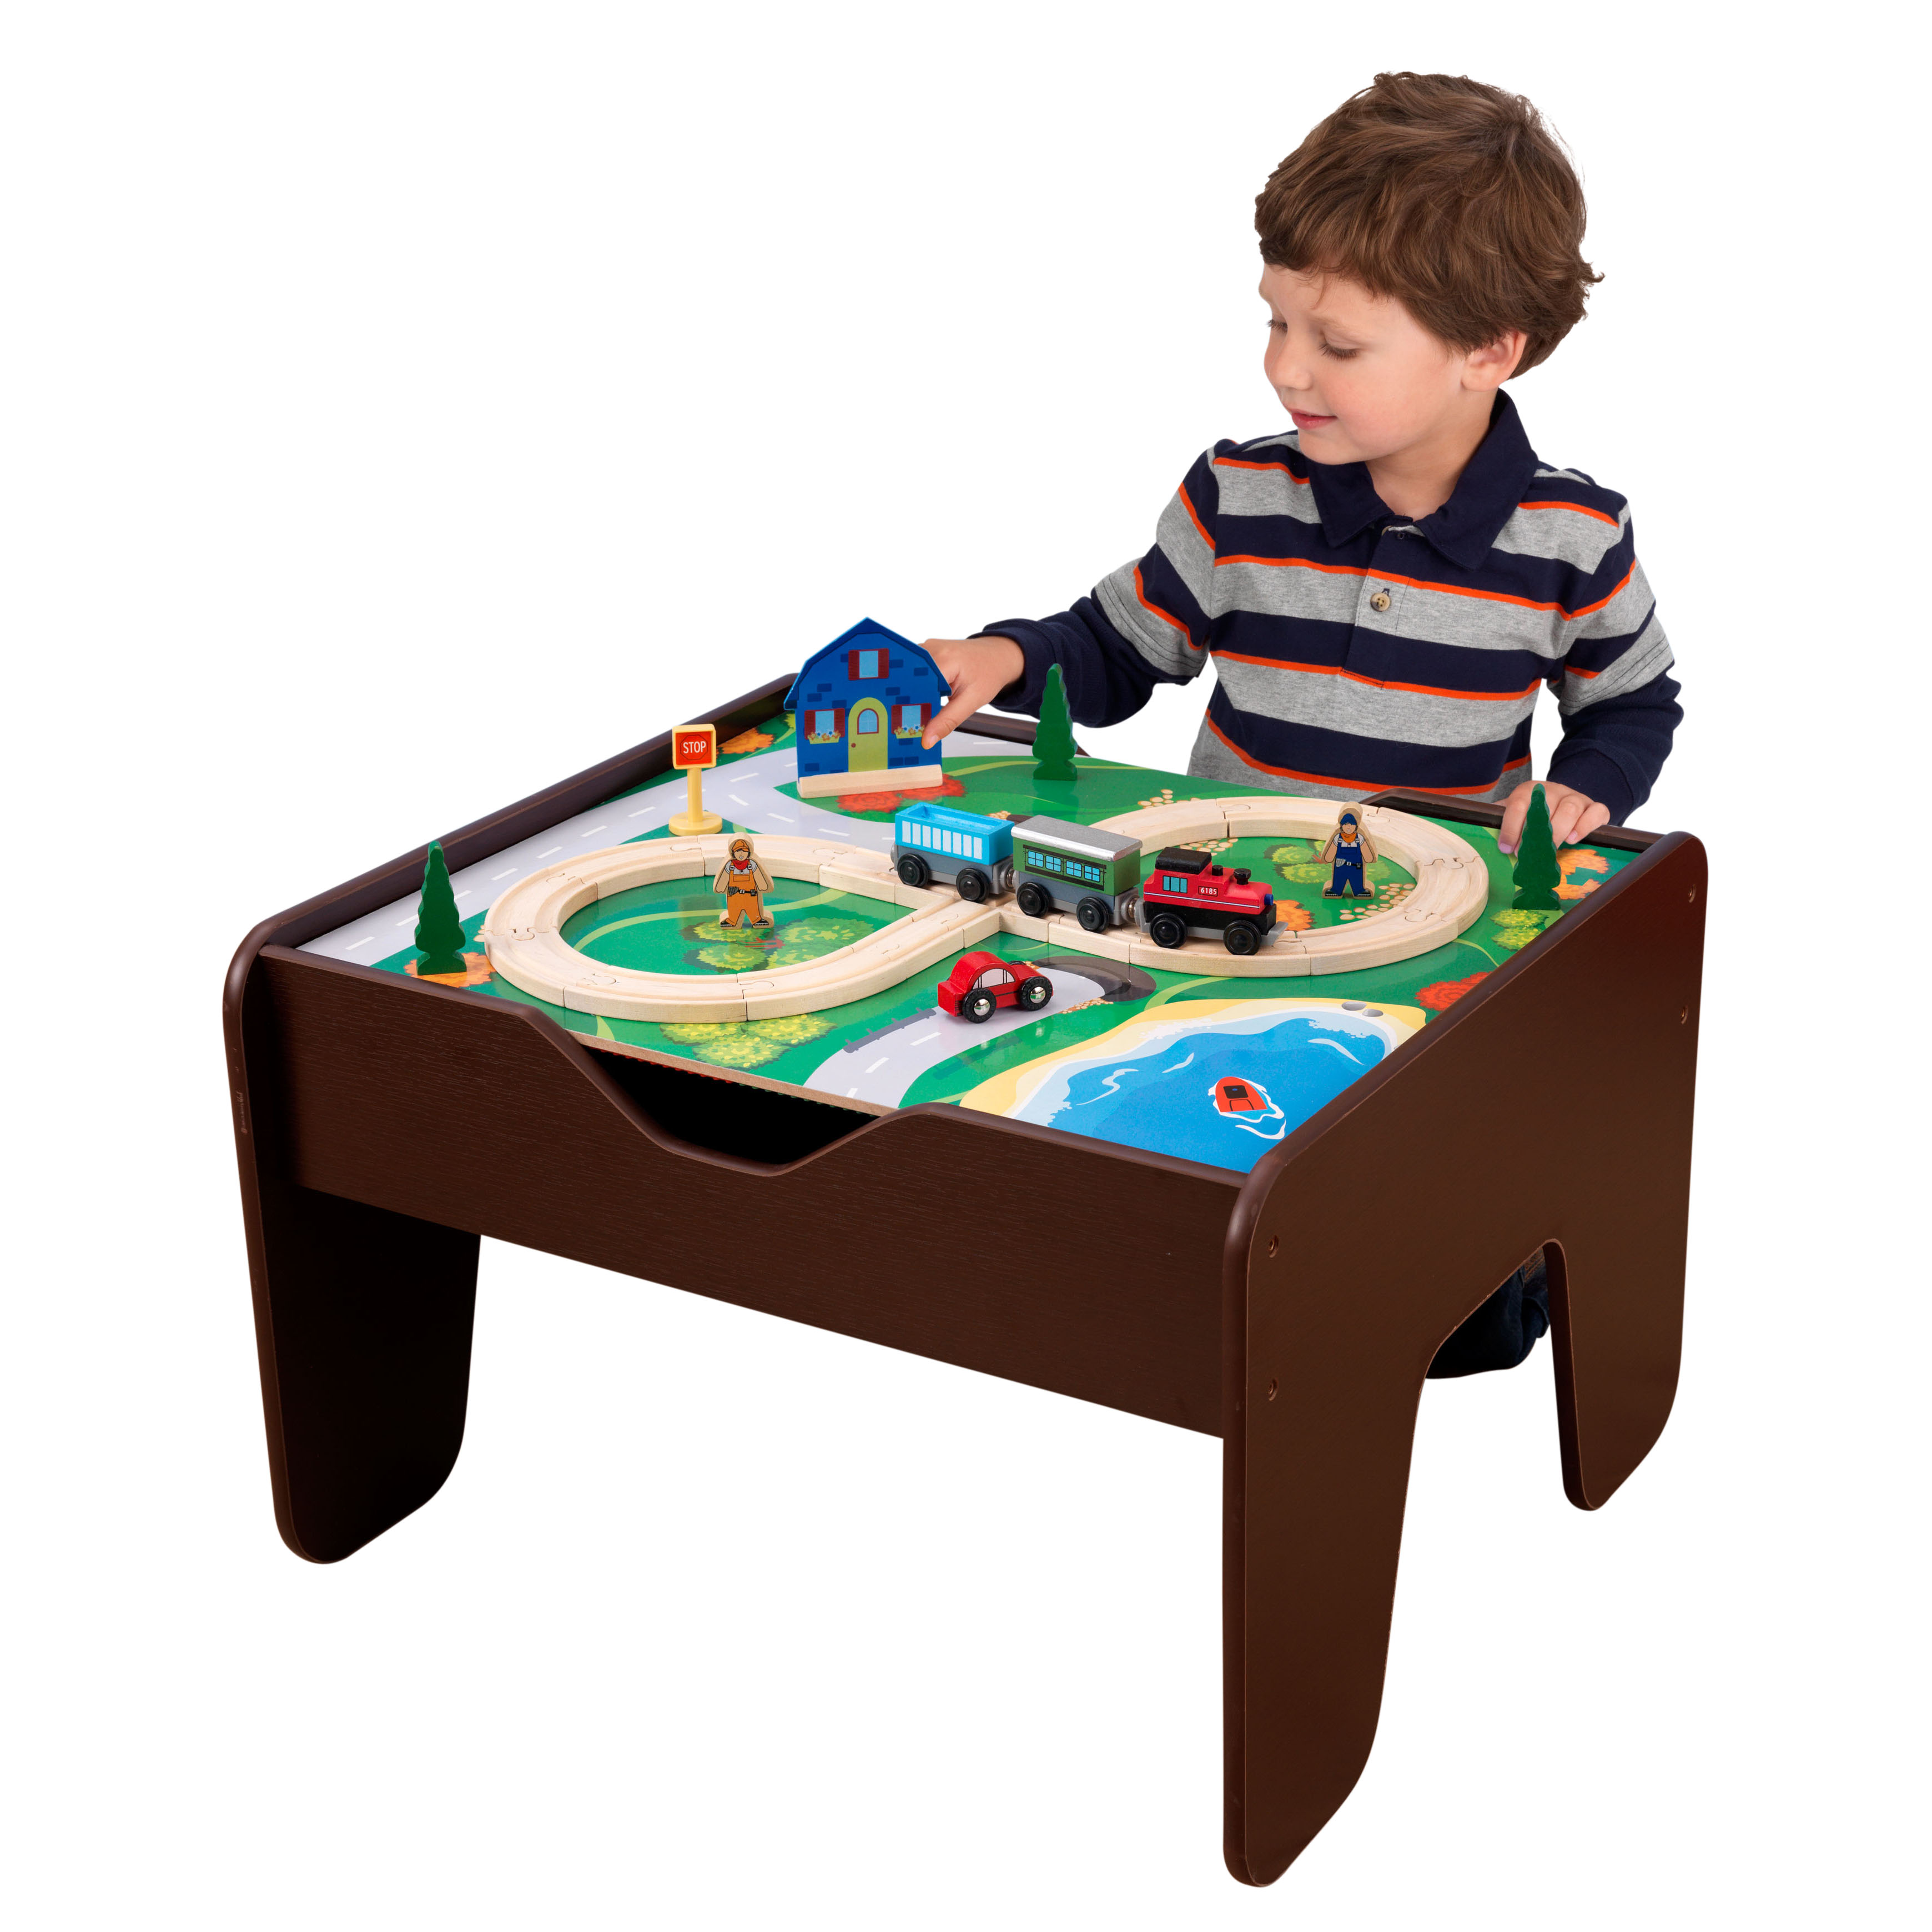 Upc 706943175774 Kidkraft 2 In 1 Espresso Train Amp Lego